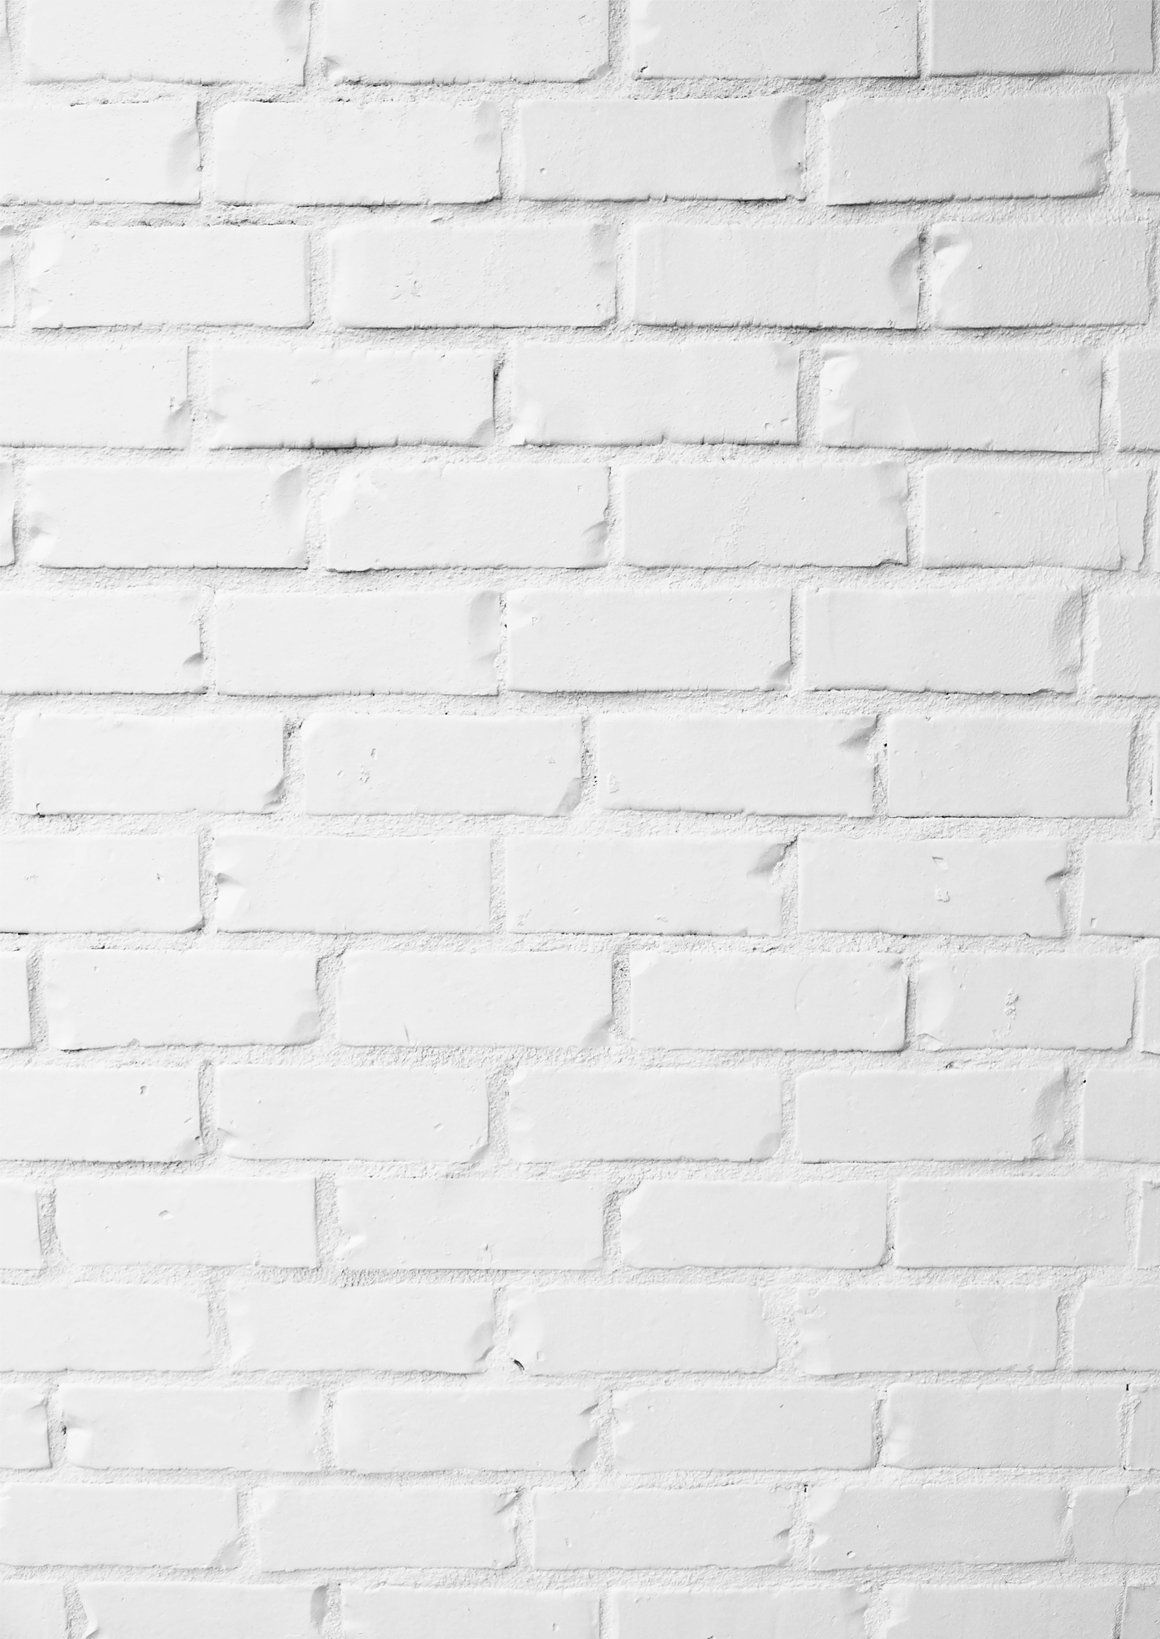 White Brick Wall Texture White Brick Walls White Brick Brick Wall